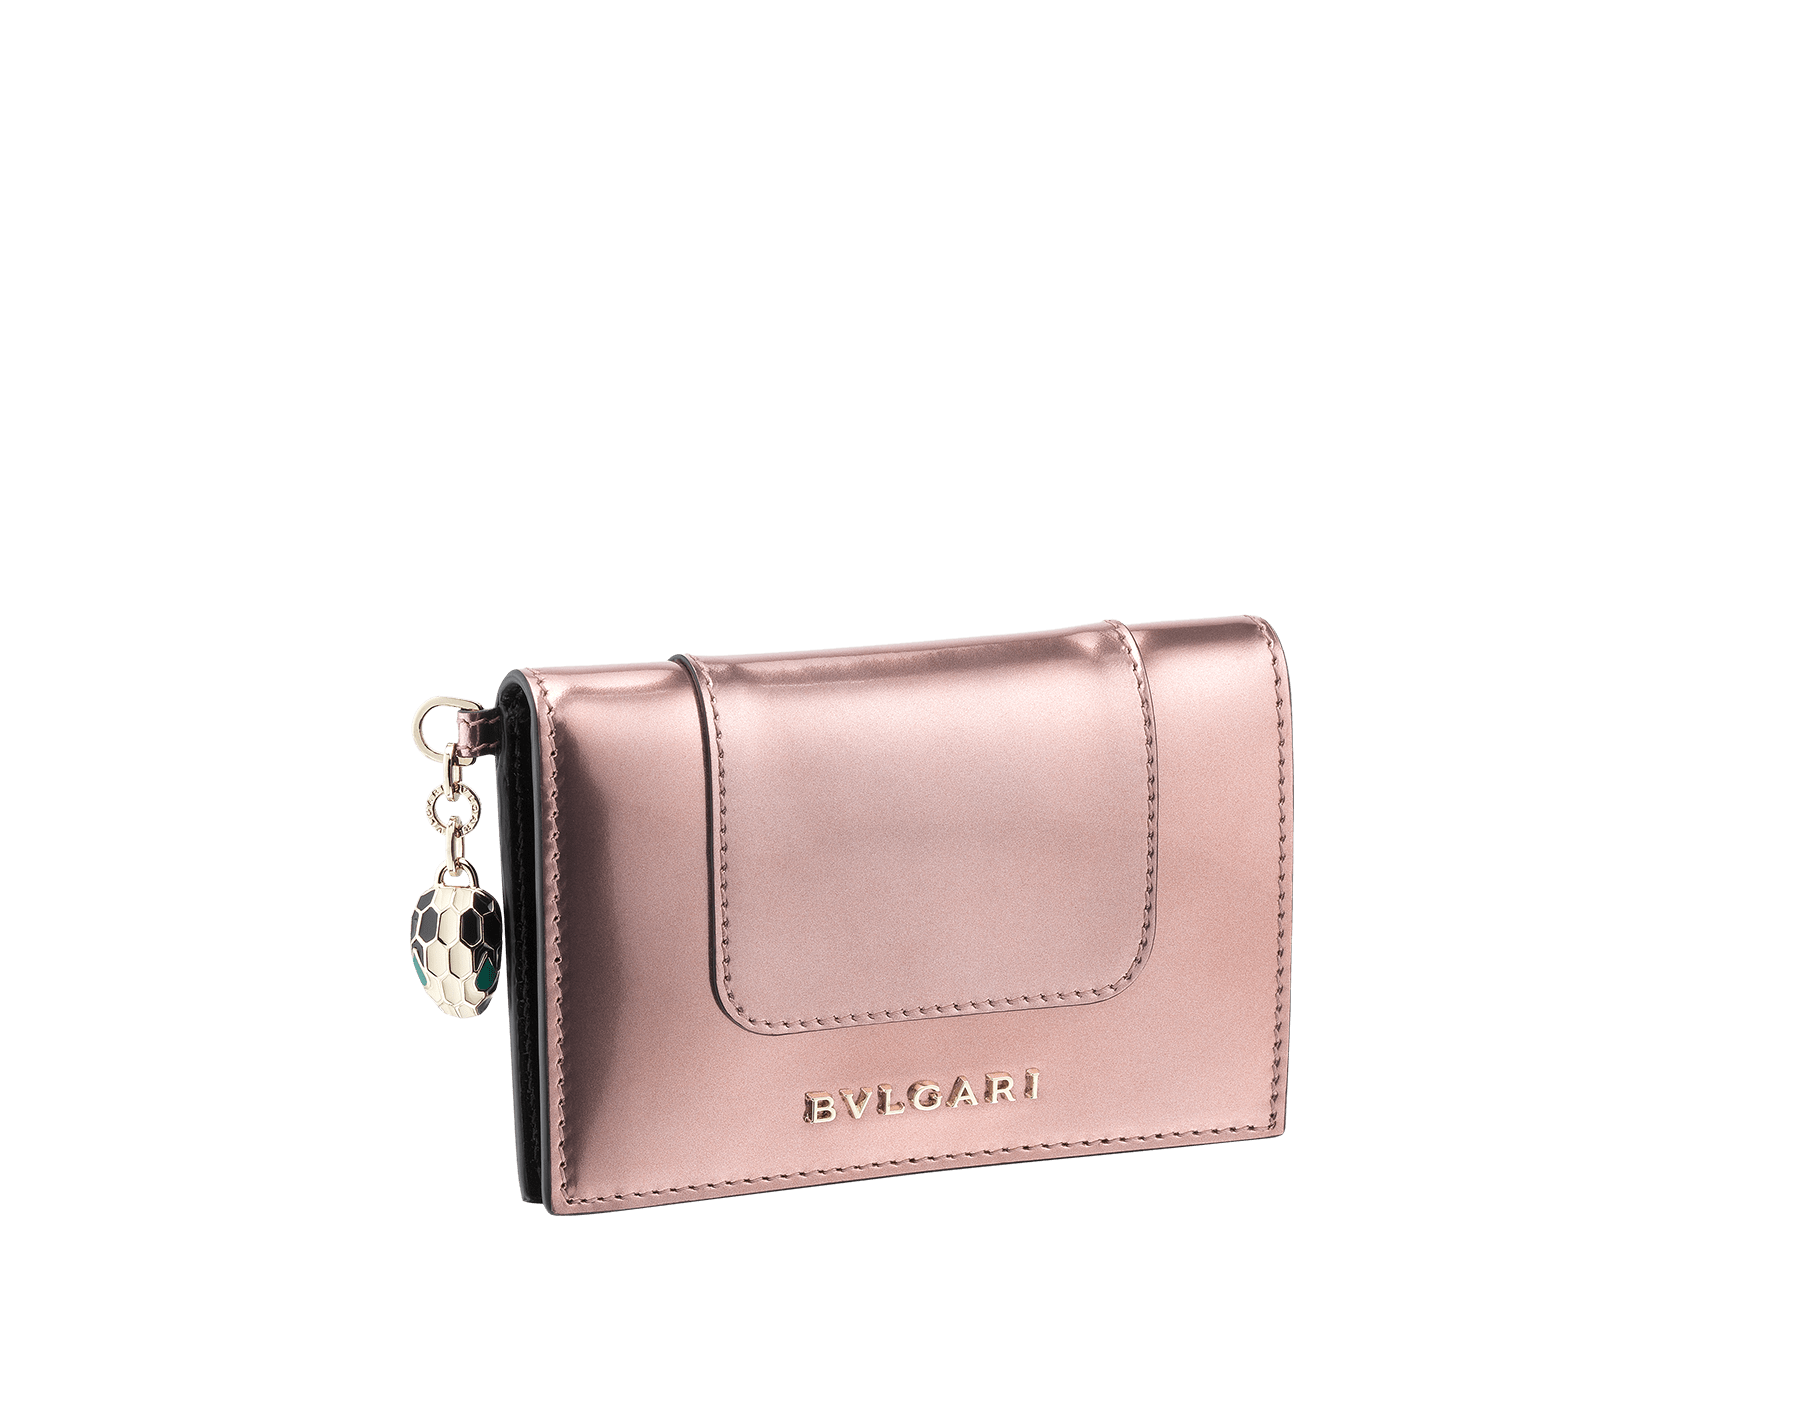 Folded credit card holder in rose quartz brushed metallic calf leather, with brass light gold plated hardware and stud closure. Serpenti head charm in black and white enamel, with green enamel eyes. 285418 image 1